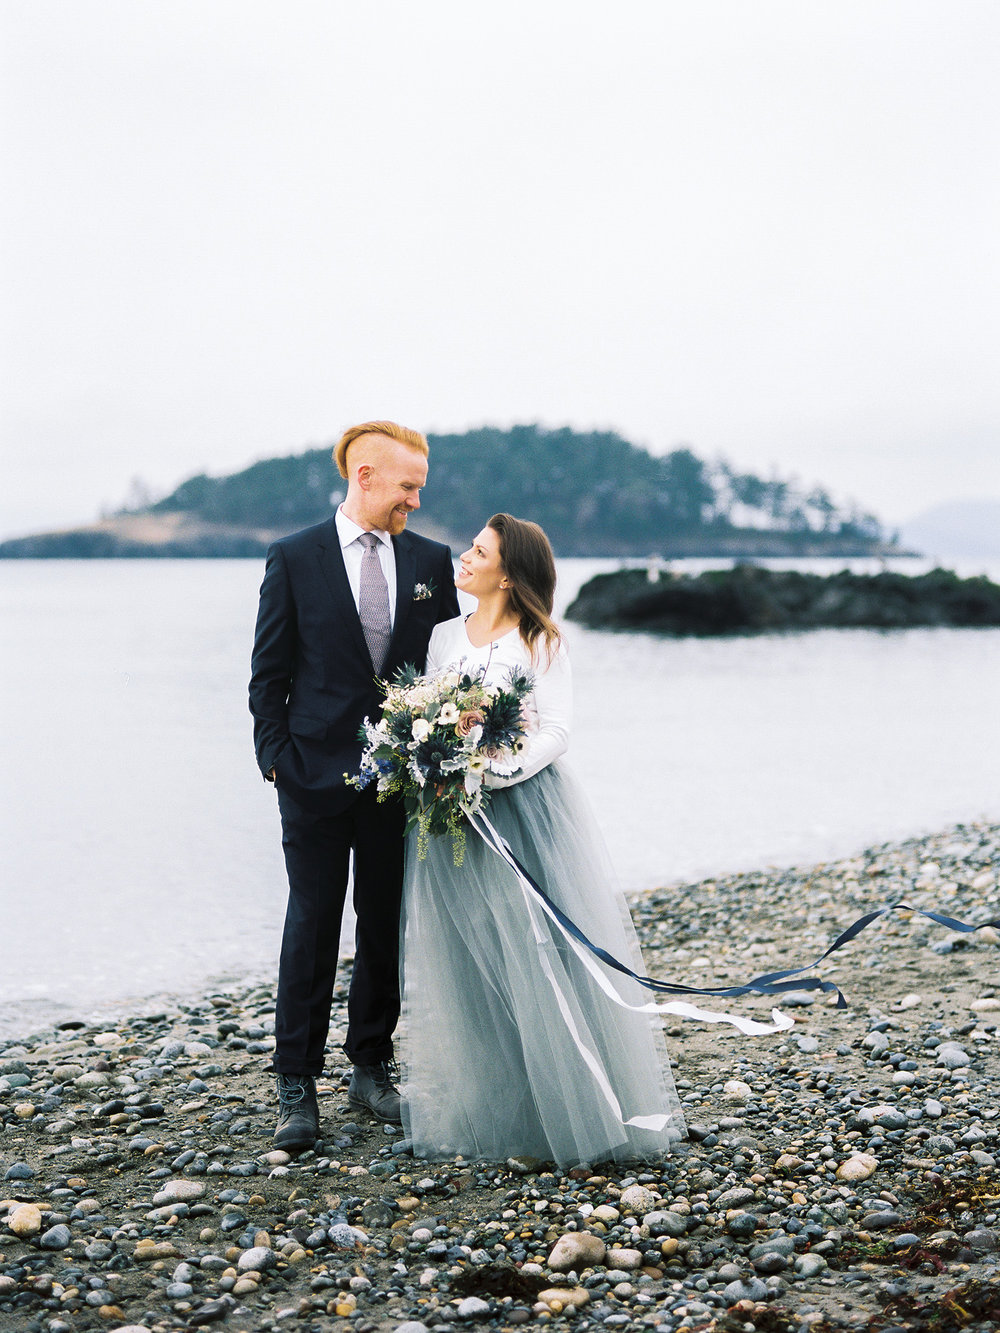 Seattle Area Deception Pass Styled Engagement Photography.jpg